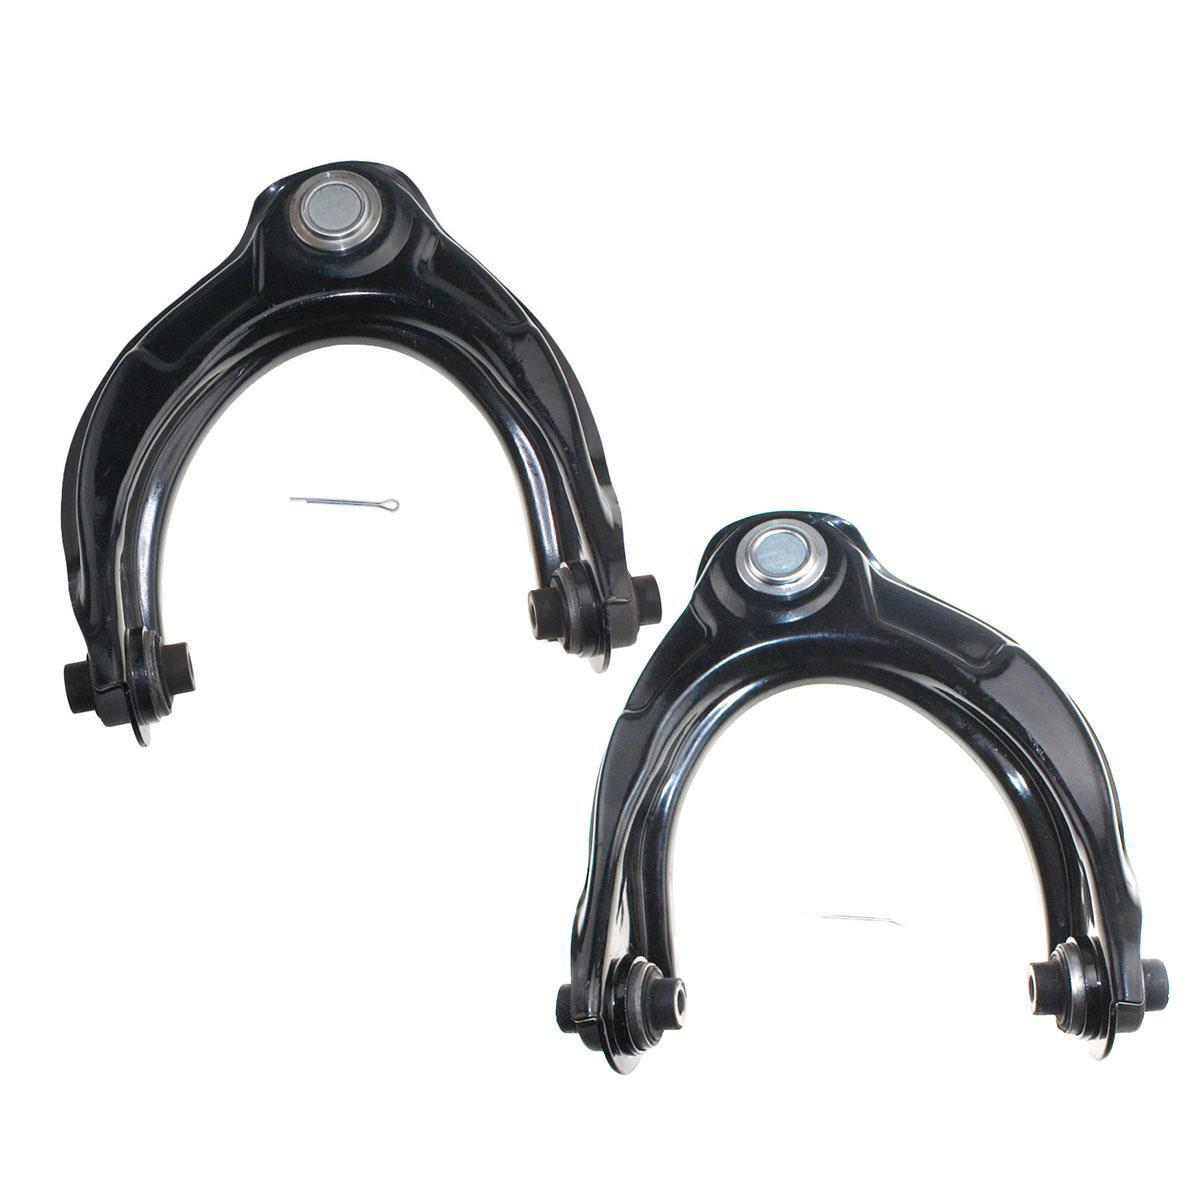 Both 2 Complete Control Arm Front Suspension Kit For Acura